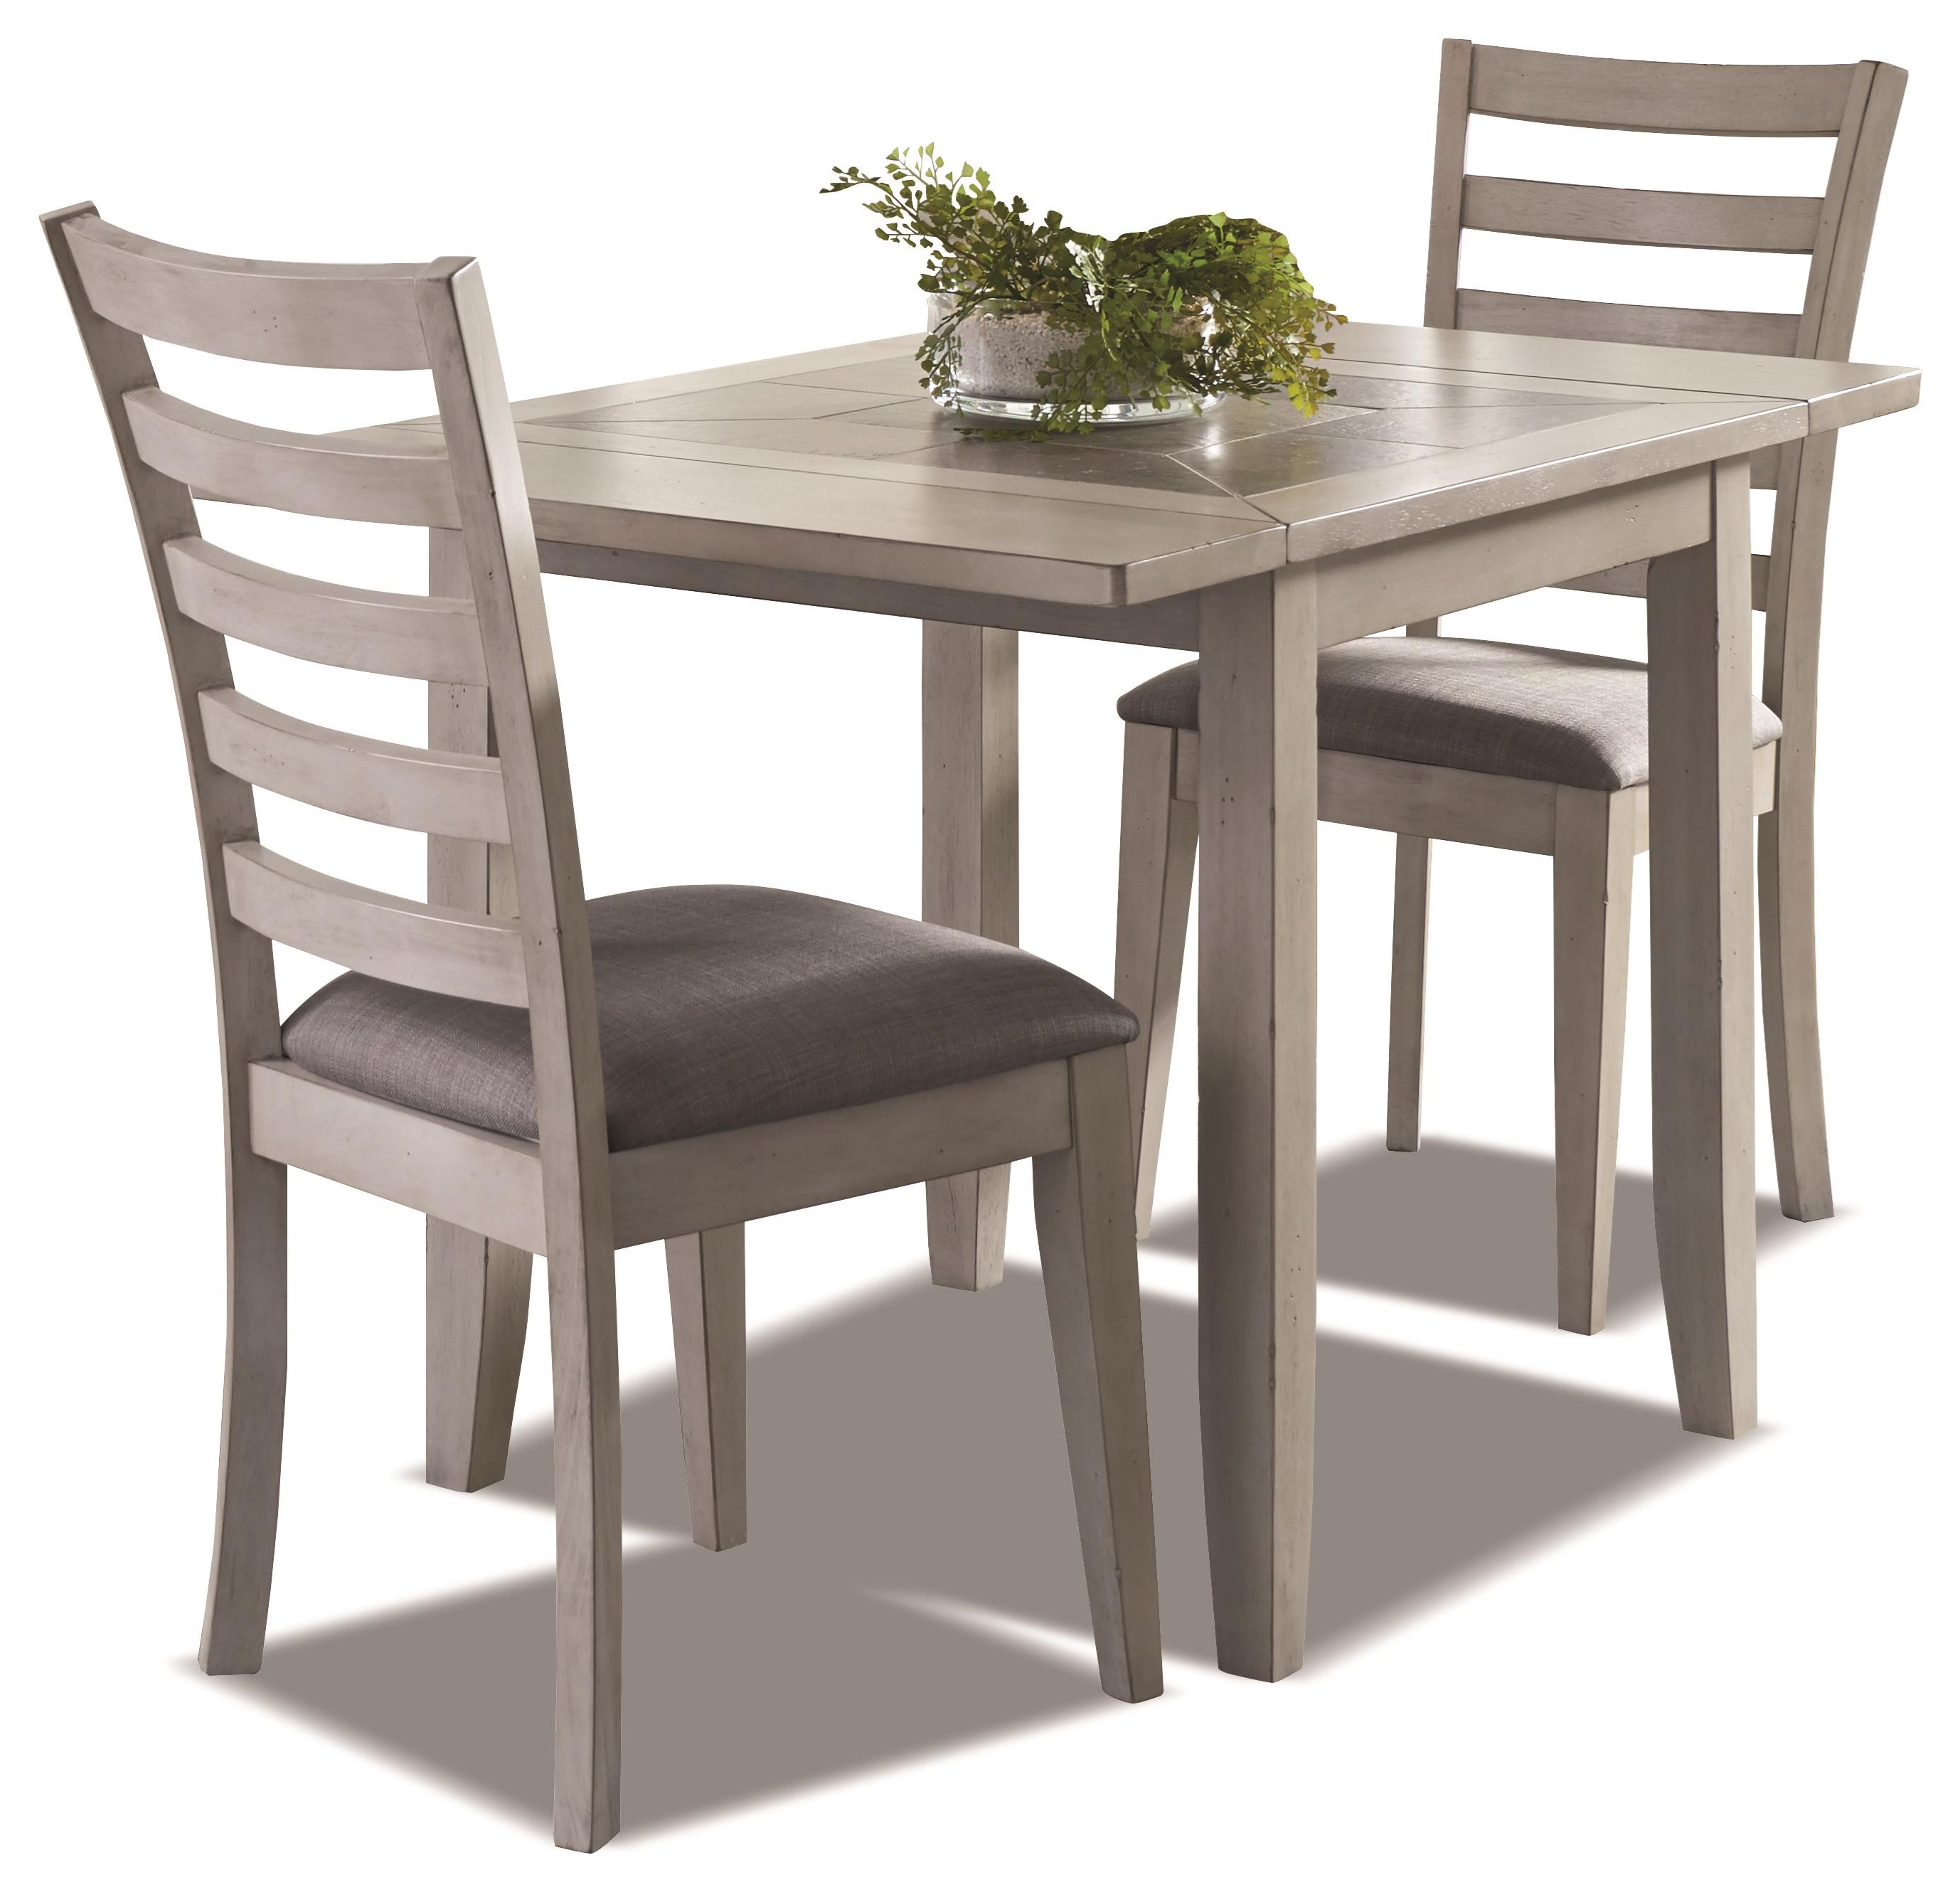 Jofran Stoneridge 3 Piece Dining Set Includes Table And 2 Chairs Morris Home Dining 3 Piece Sets